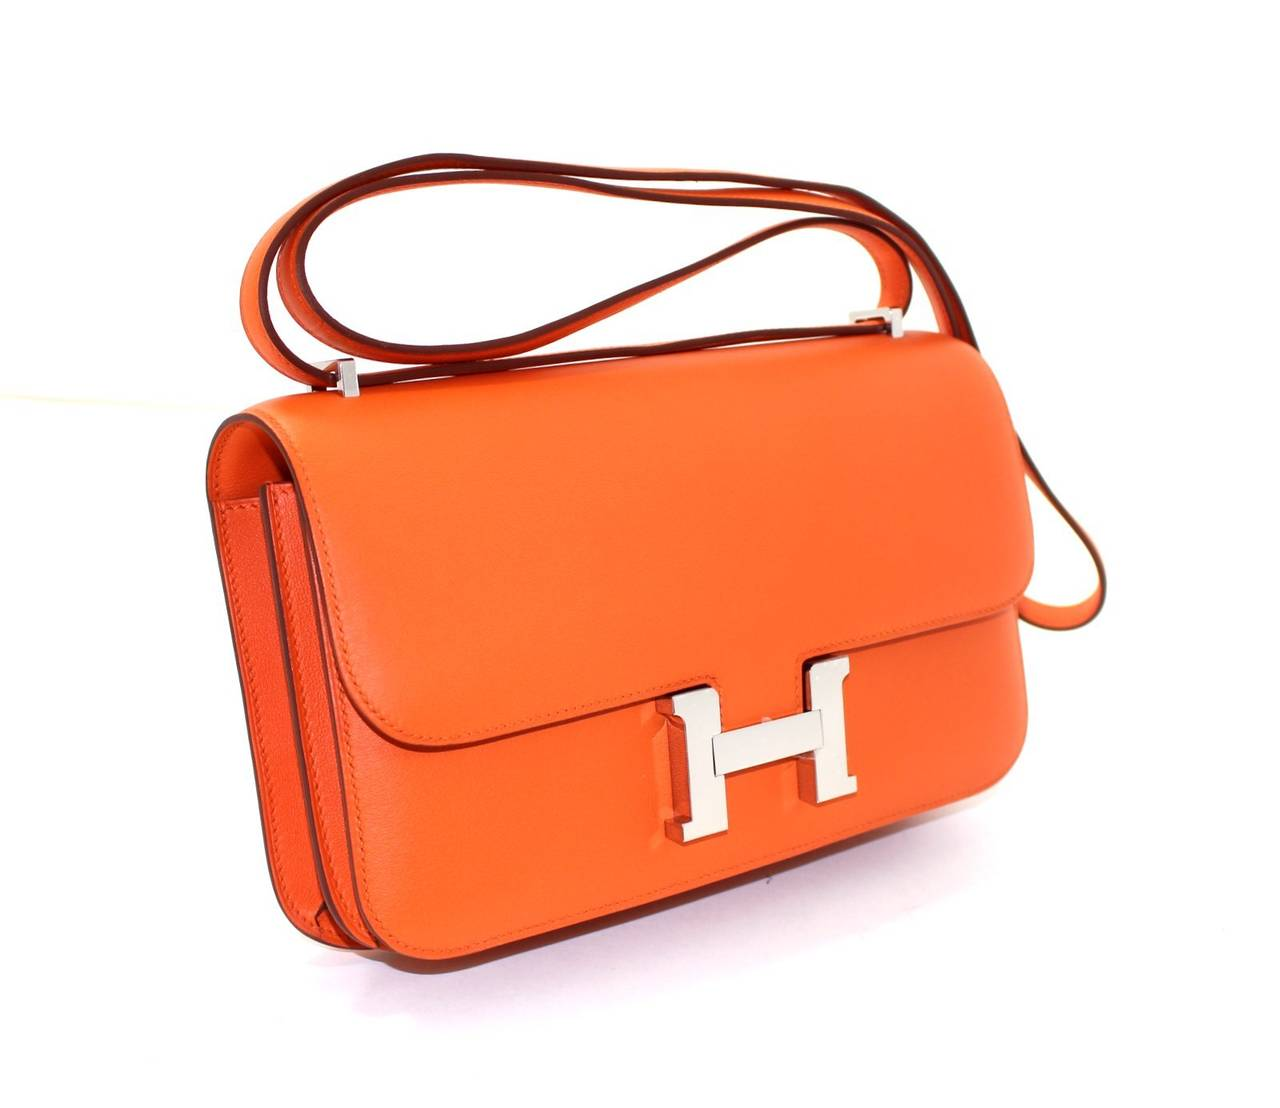 herm s orange swift leather constance elan crossbody shoulder bag at 1stdibs. Black Bedroom Furniture Sets. Home Design Ideas